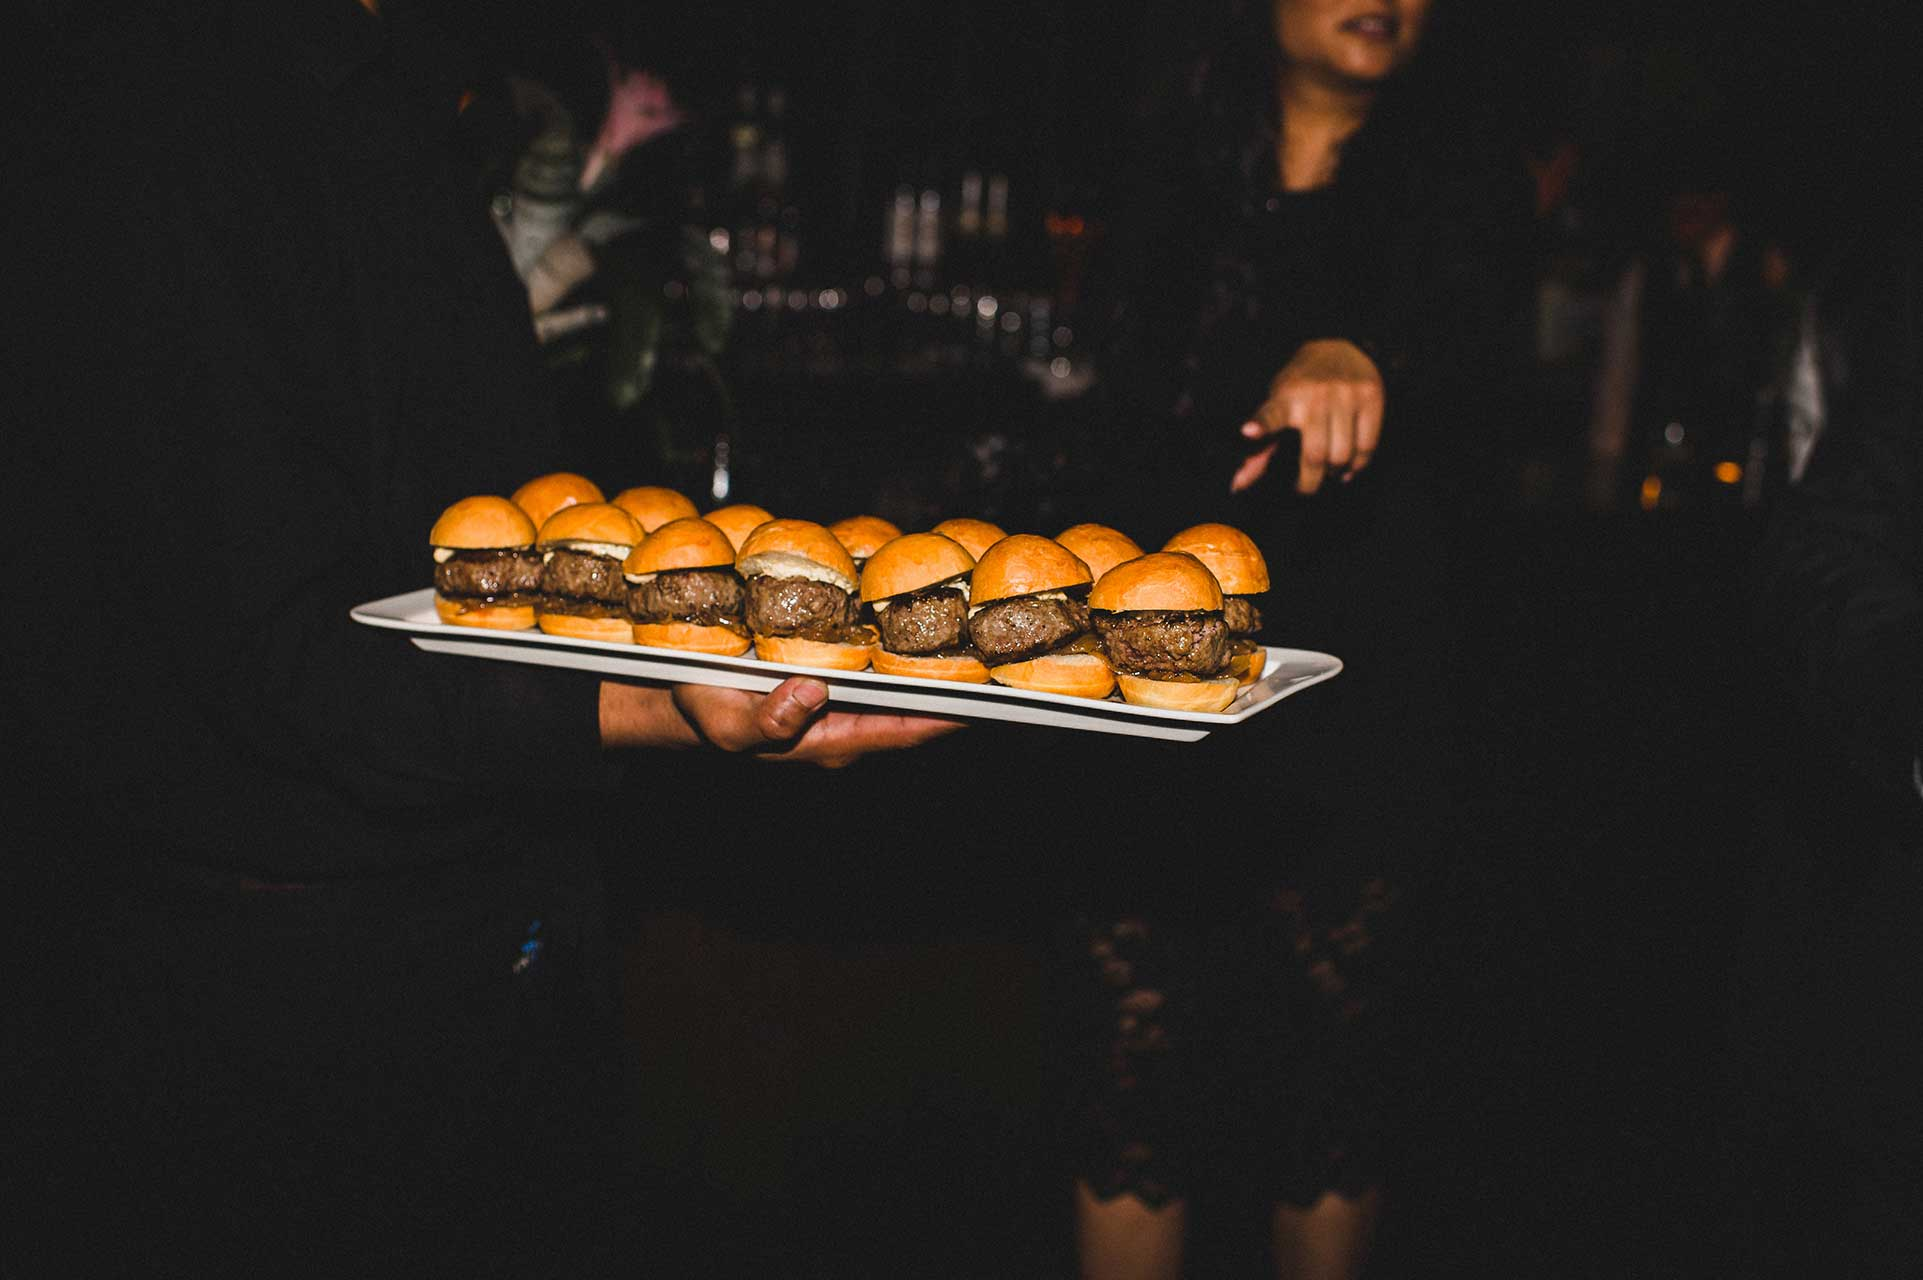 Wedding Catering Toronto - Late Night Snacks - Sliders